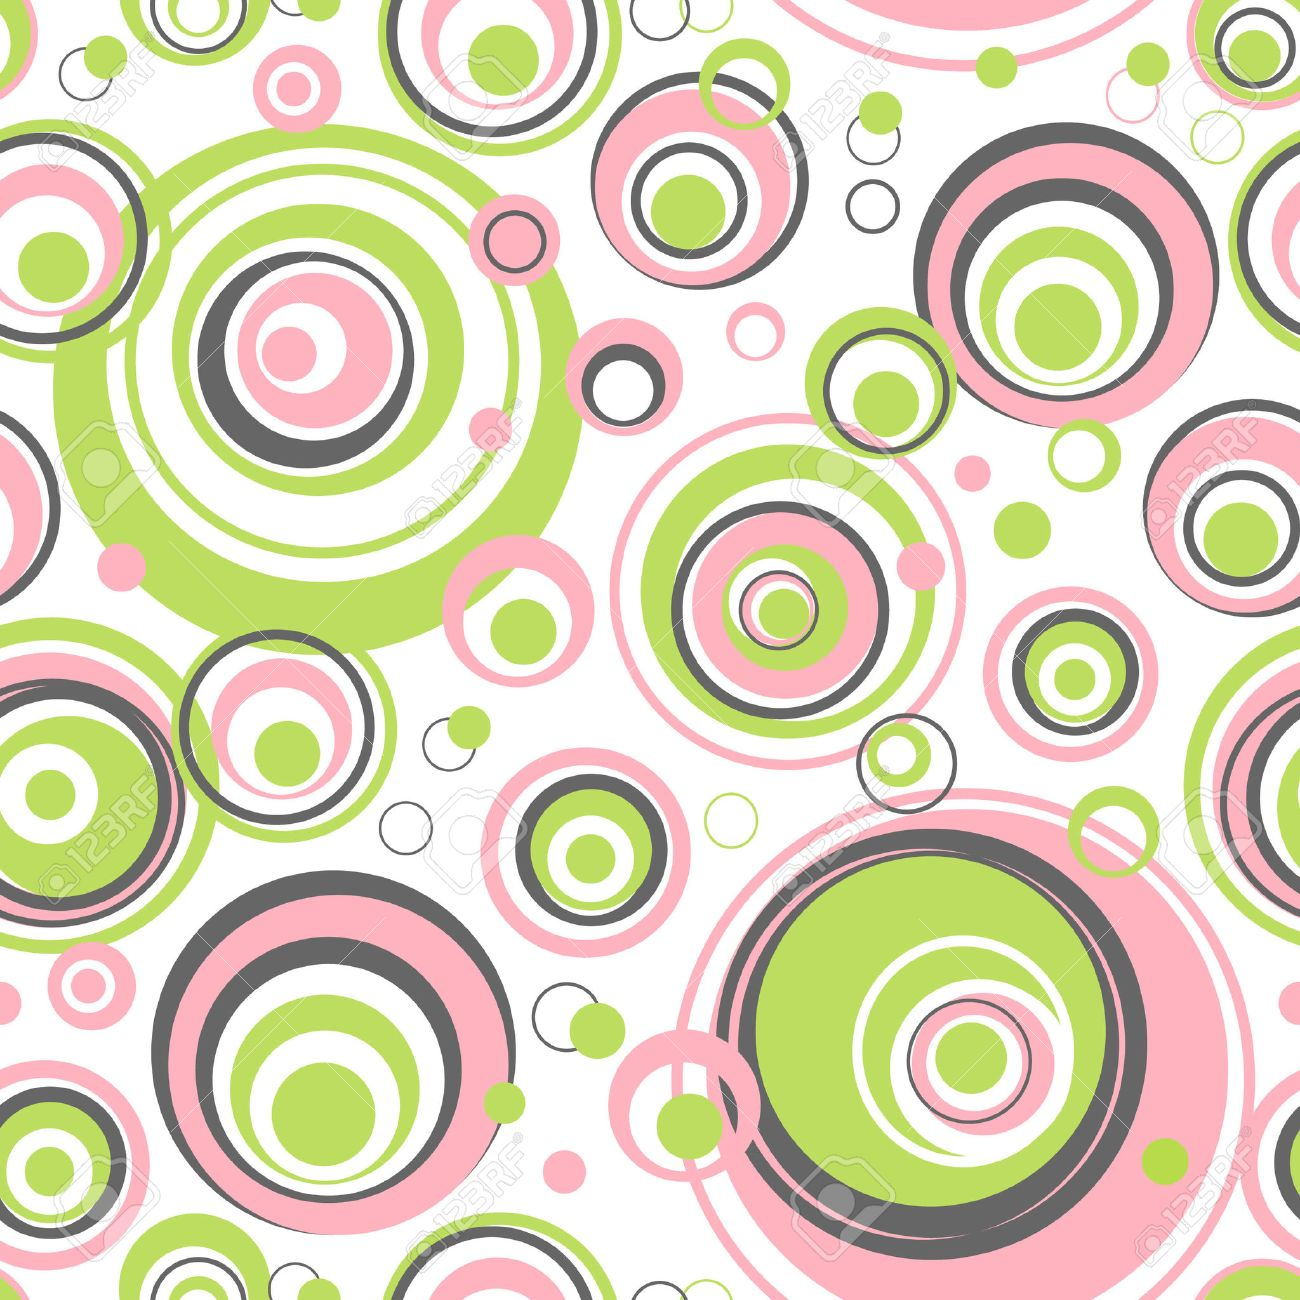 Circles seamless pattern - Vector background for continuous replicate. See more seamless patterns in my portfolio. - 8568749